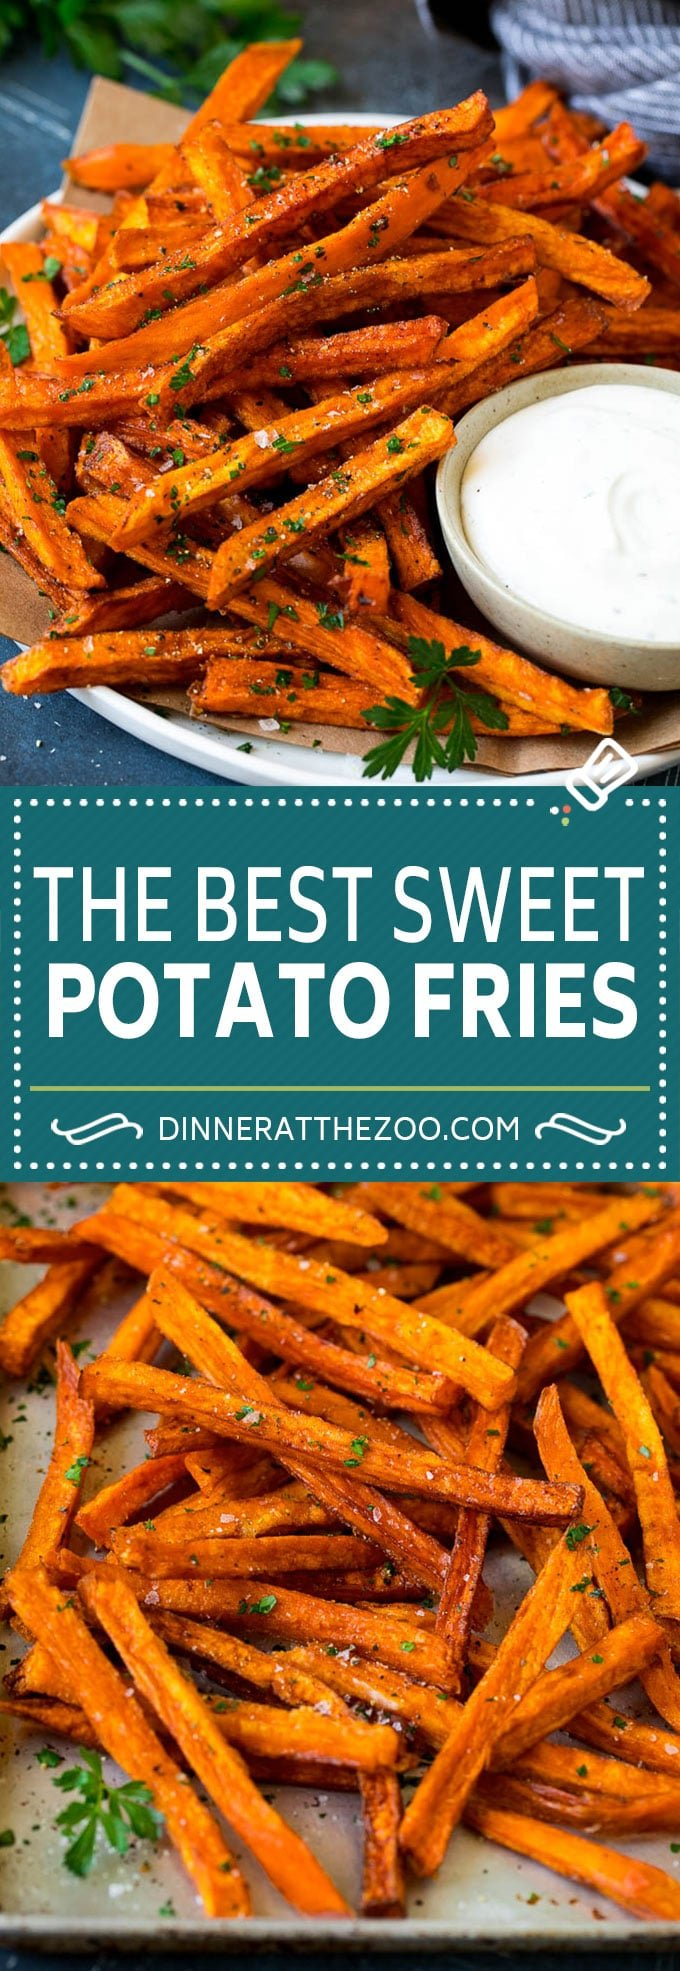 Sweet Potato Fries Recipe | Baked Sweet Potato Fries | Homemade Fries #fries #sweetpotato #sidedish #frenchfries #dinner #dinneratthezoo